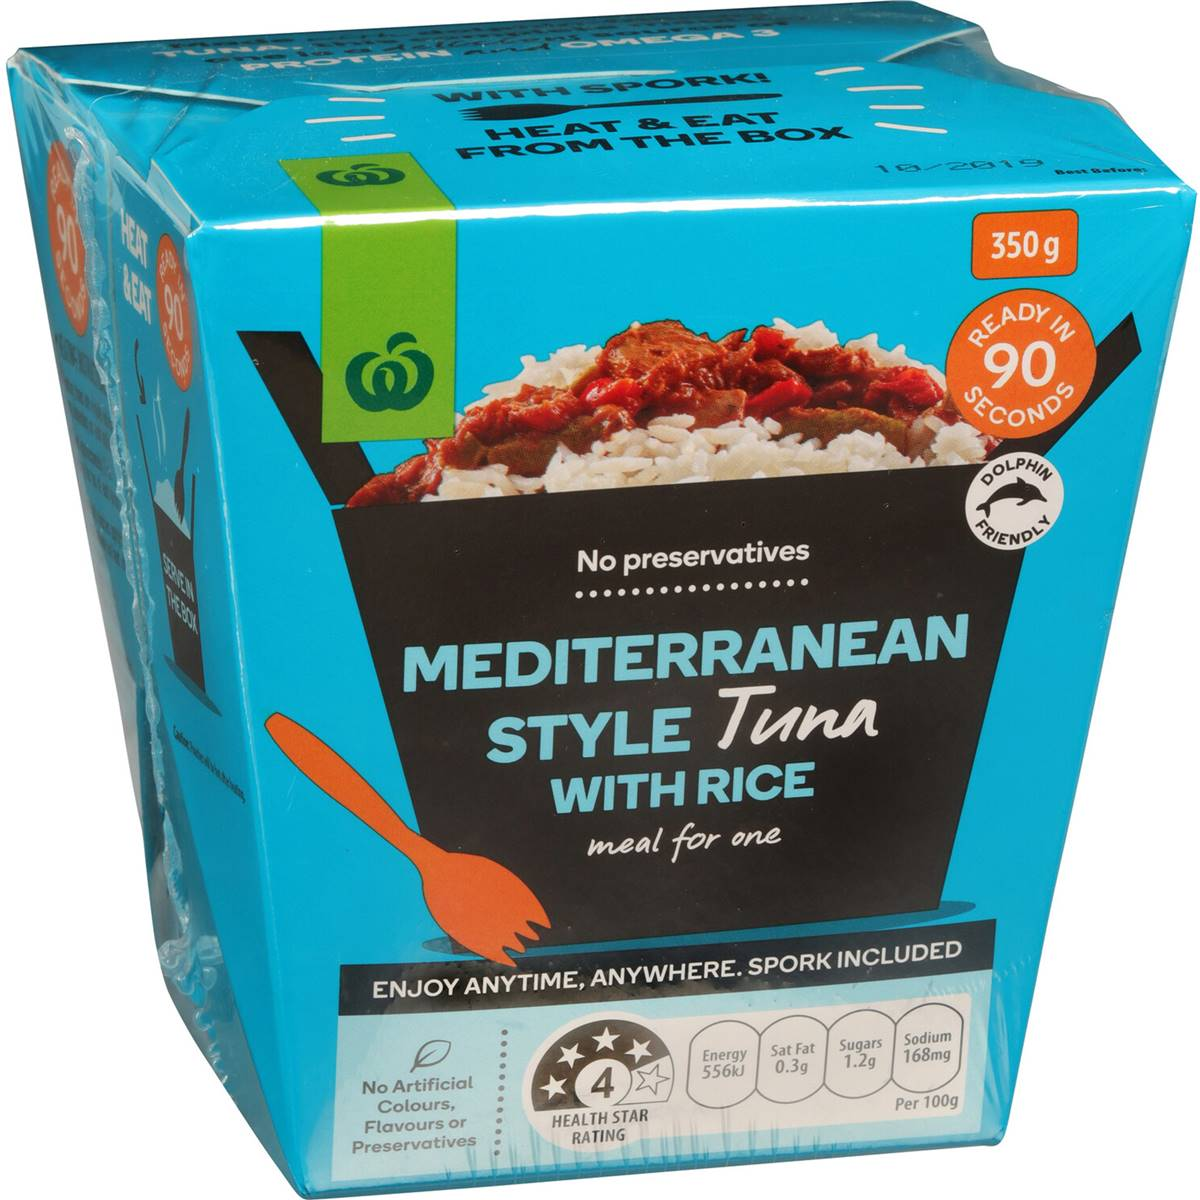 Woolworths Tuna With Rice Mediterranean Style